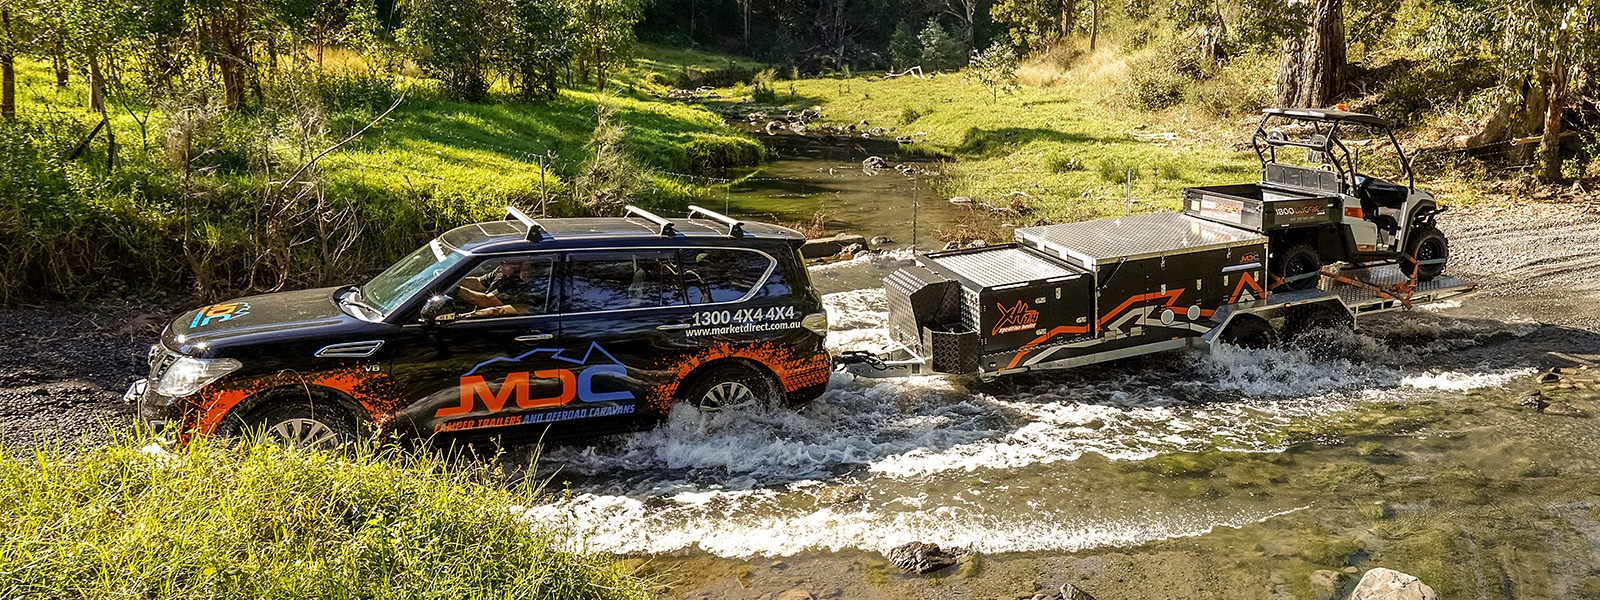 MDC XH7.4 Xpedition Hauler Offroad Camper Trailer River Crossing